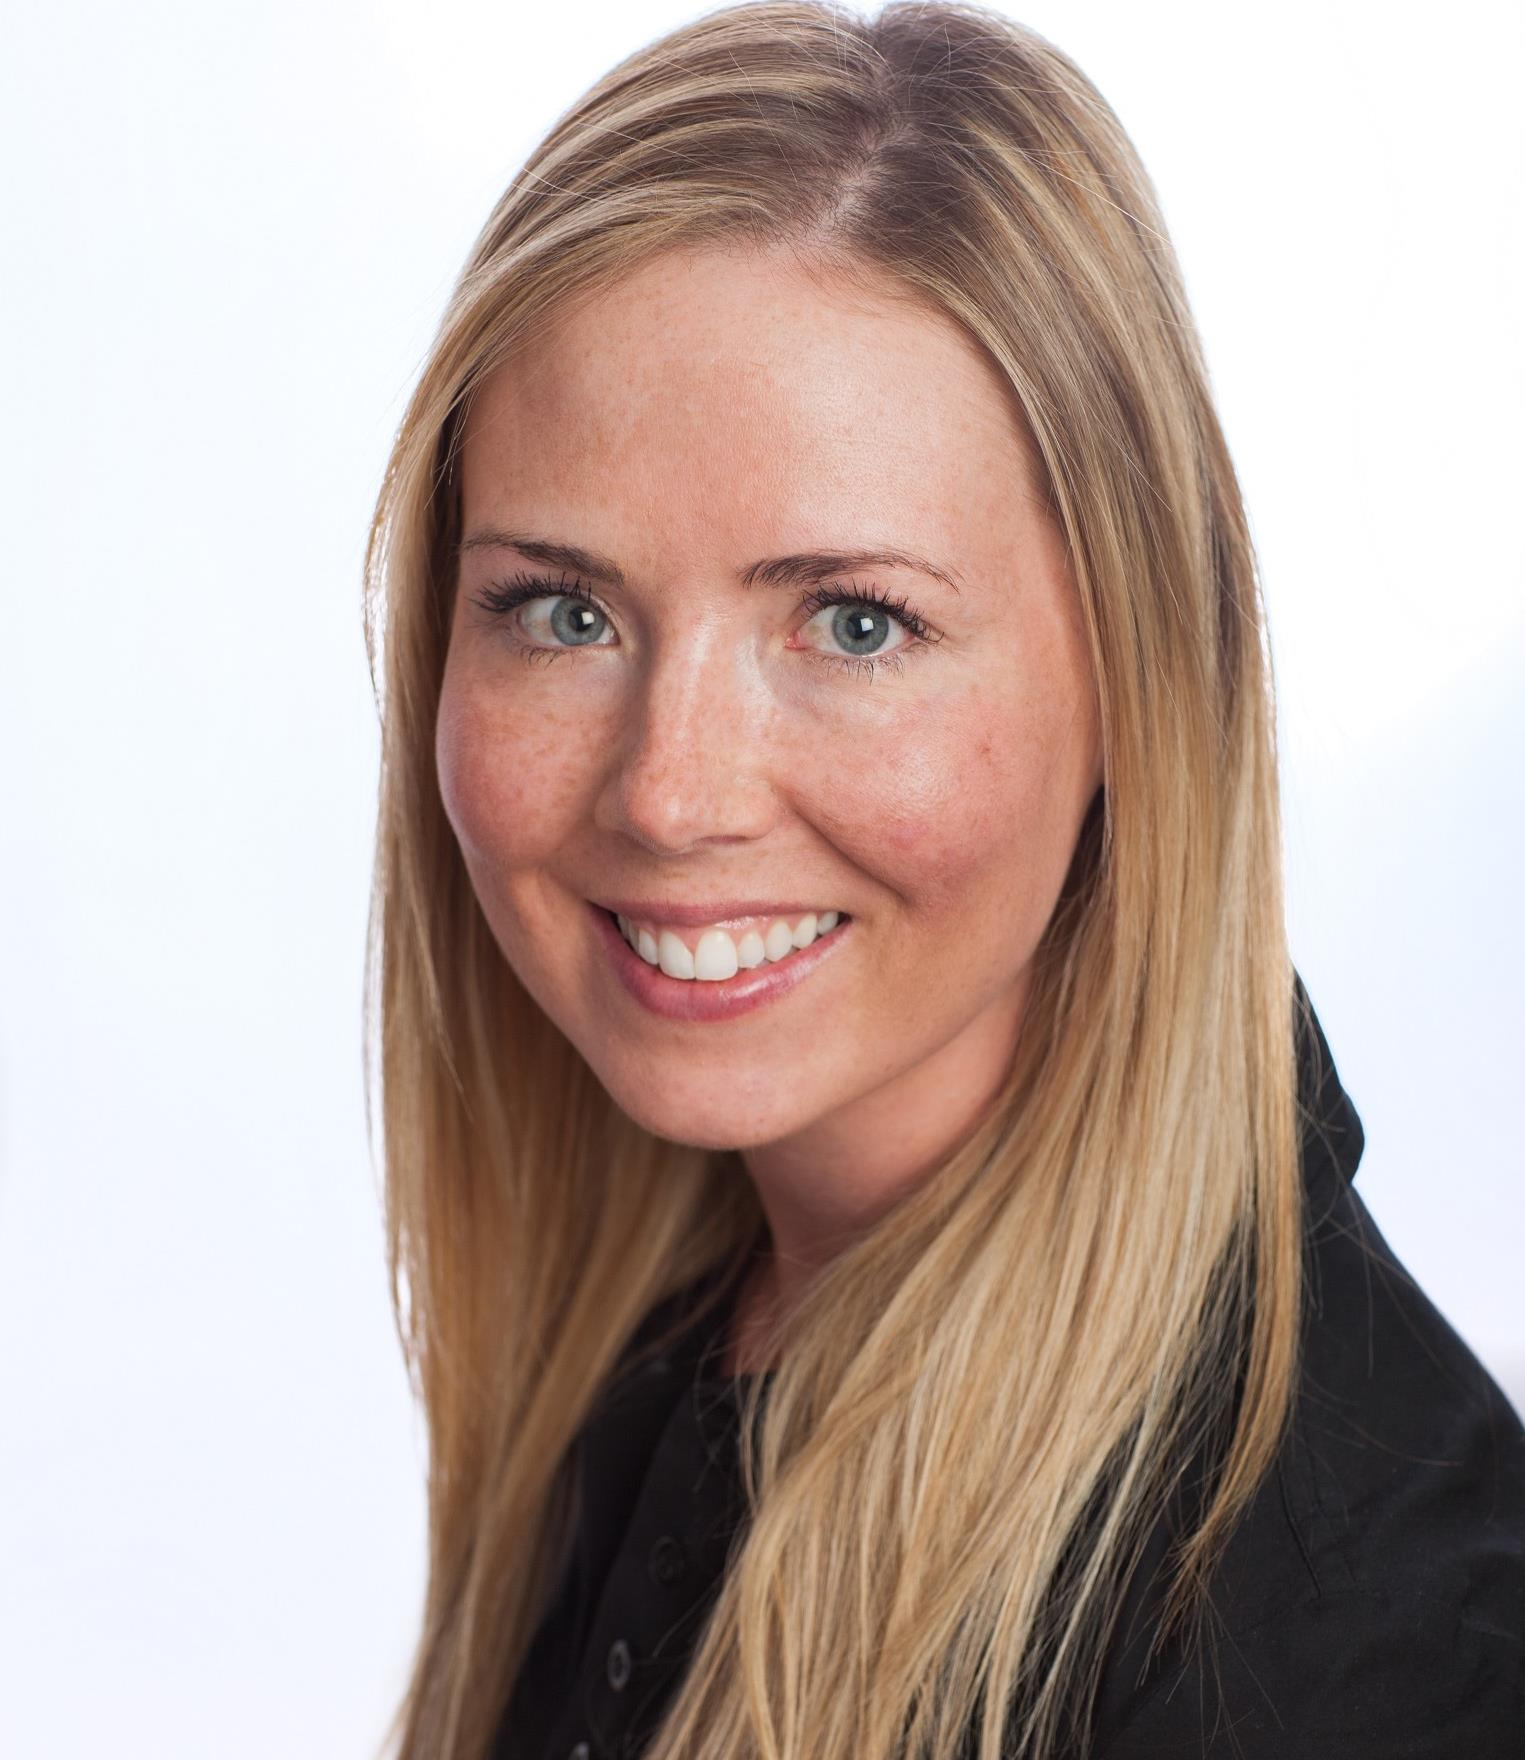 Jill Marlin is a licensed real estate agent in Edmonton AB